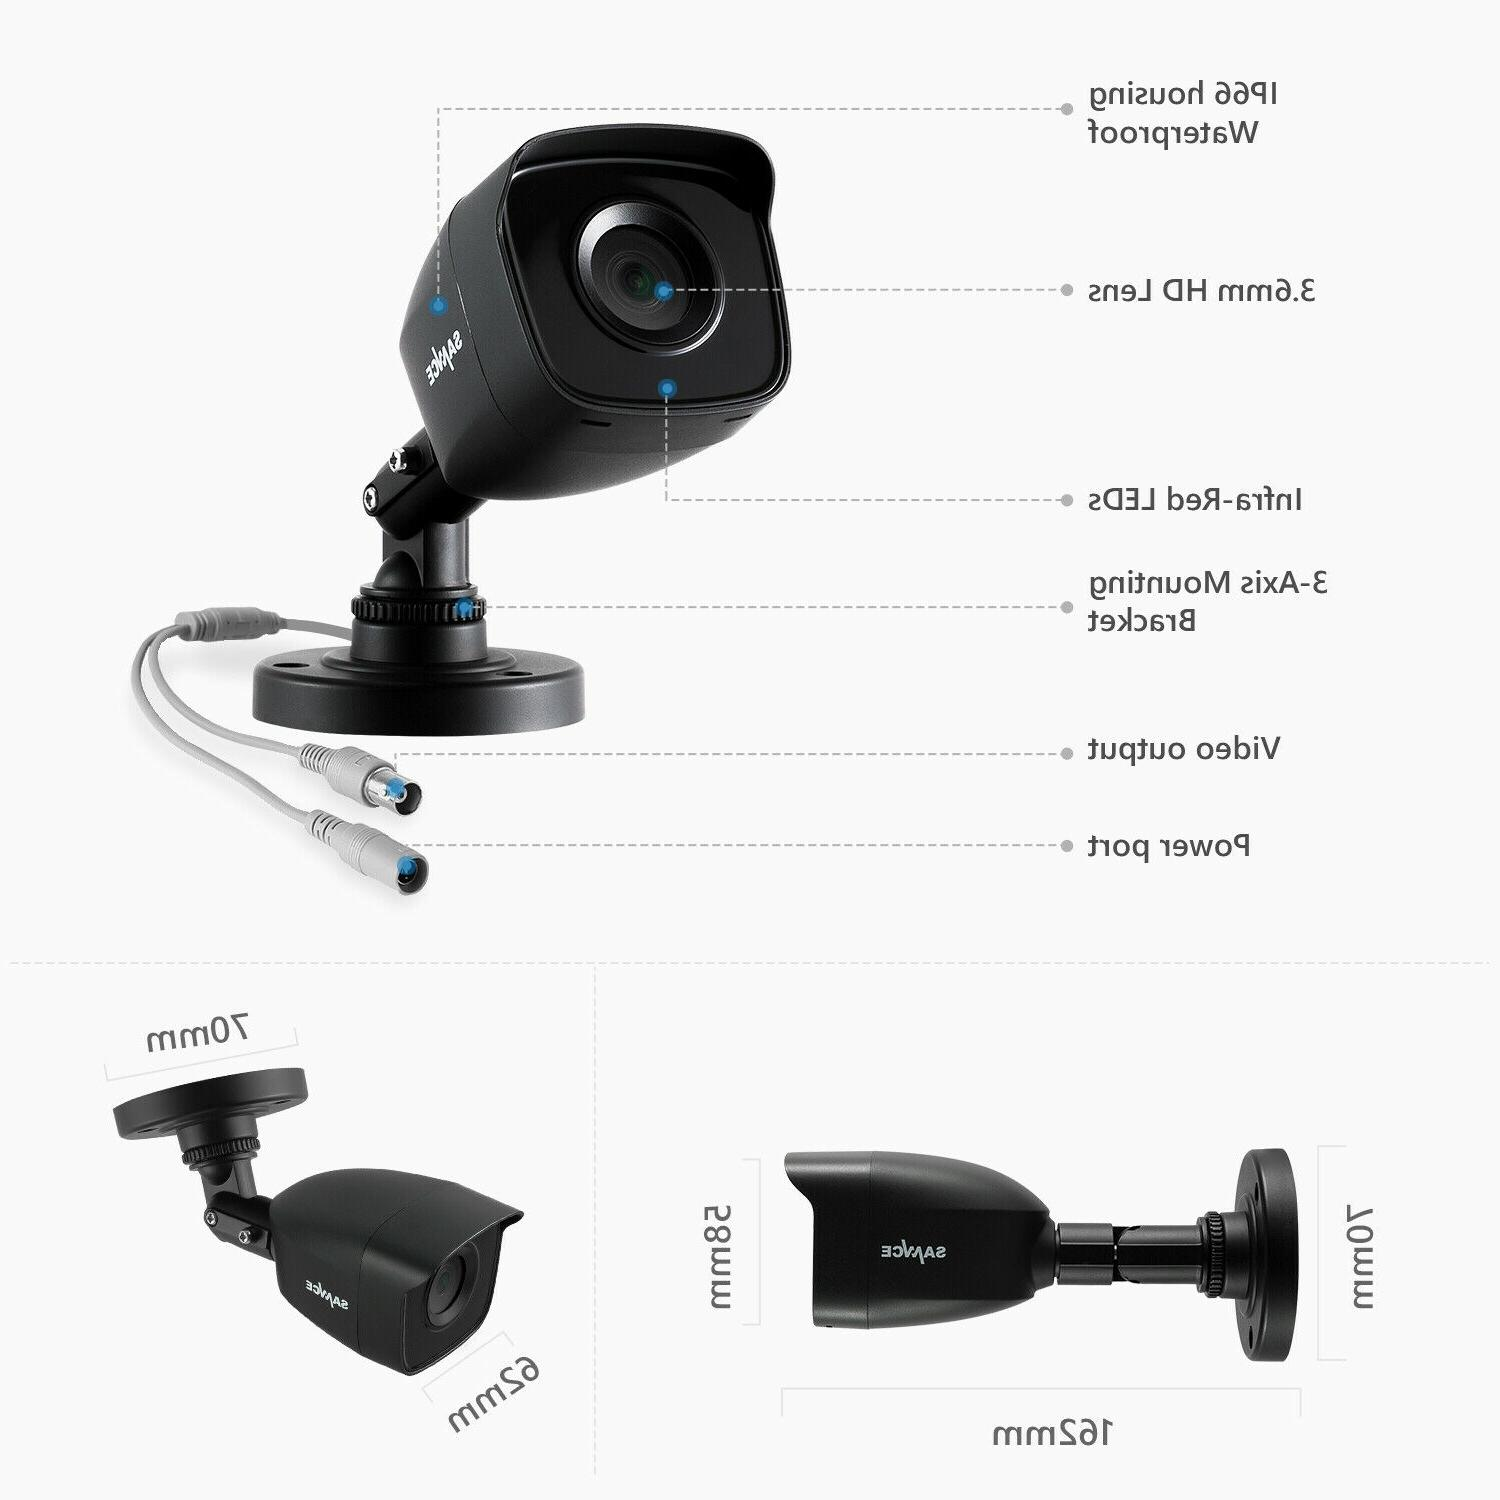 SANNCE 1080P 5IN1 CCTV Security System